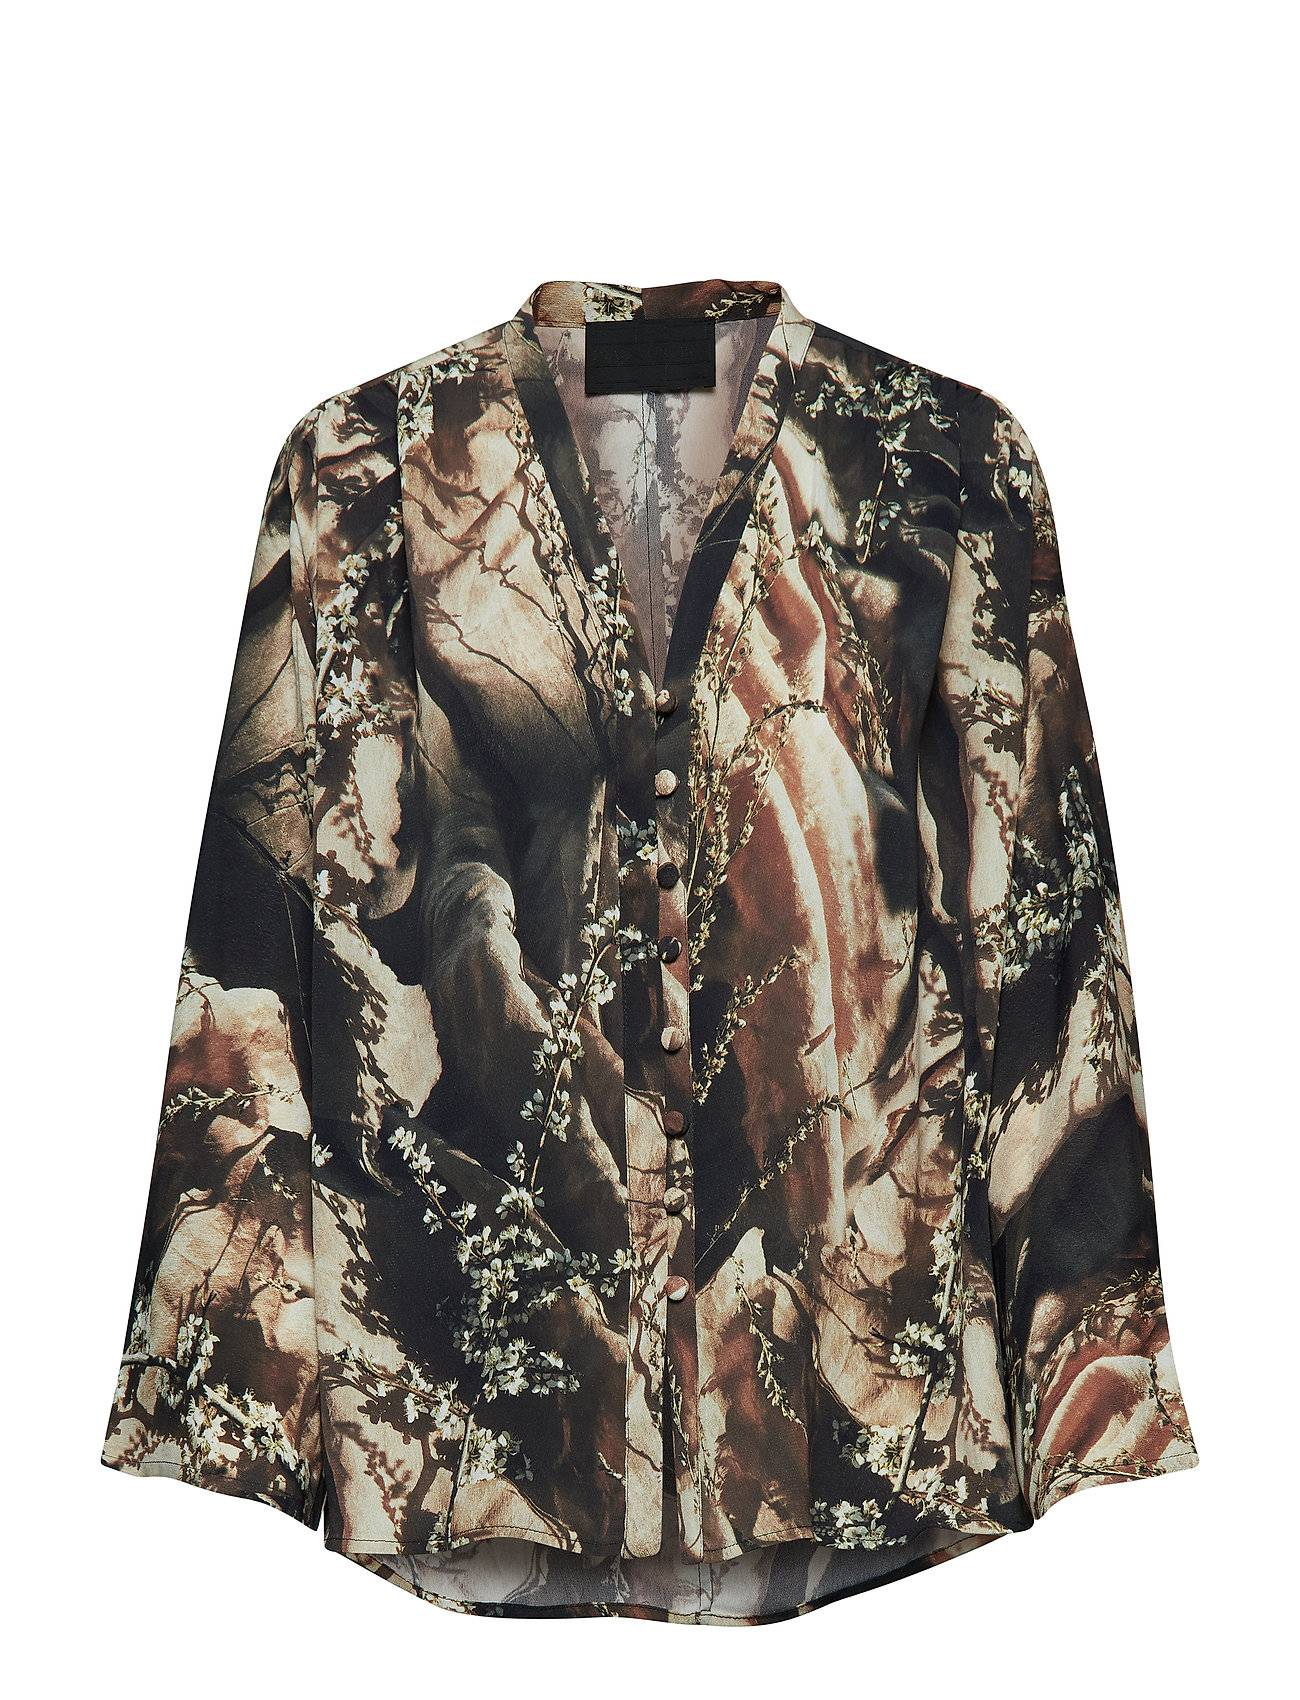 Diana Orving Buttoned Blouse